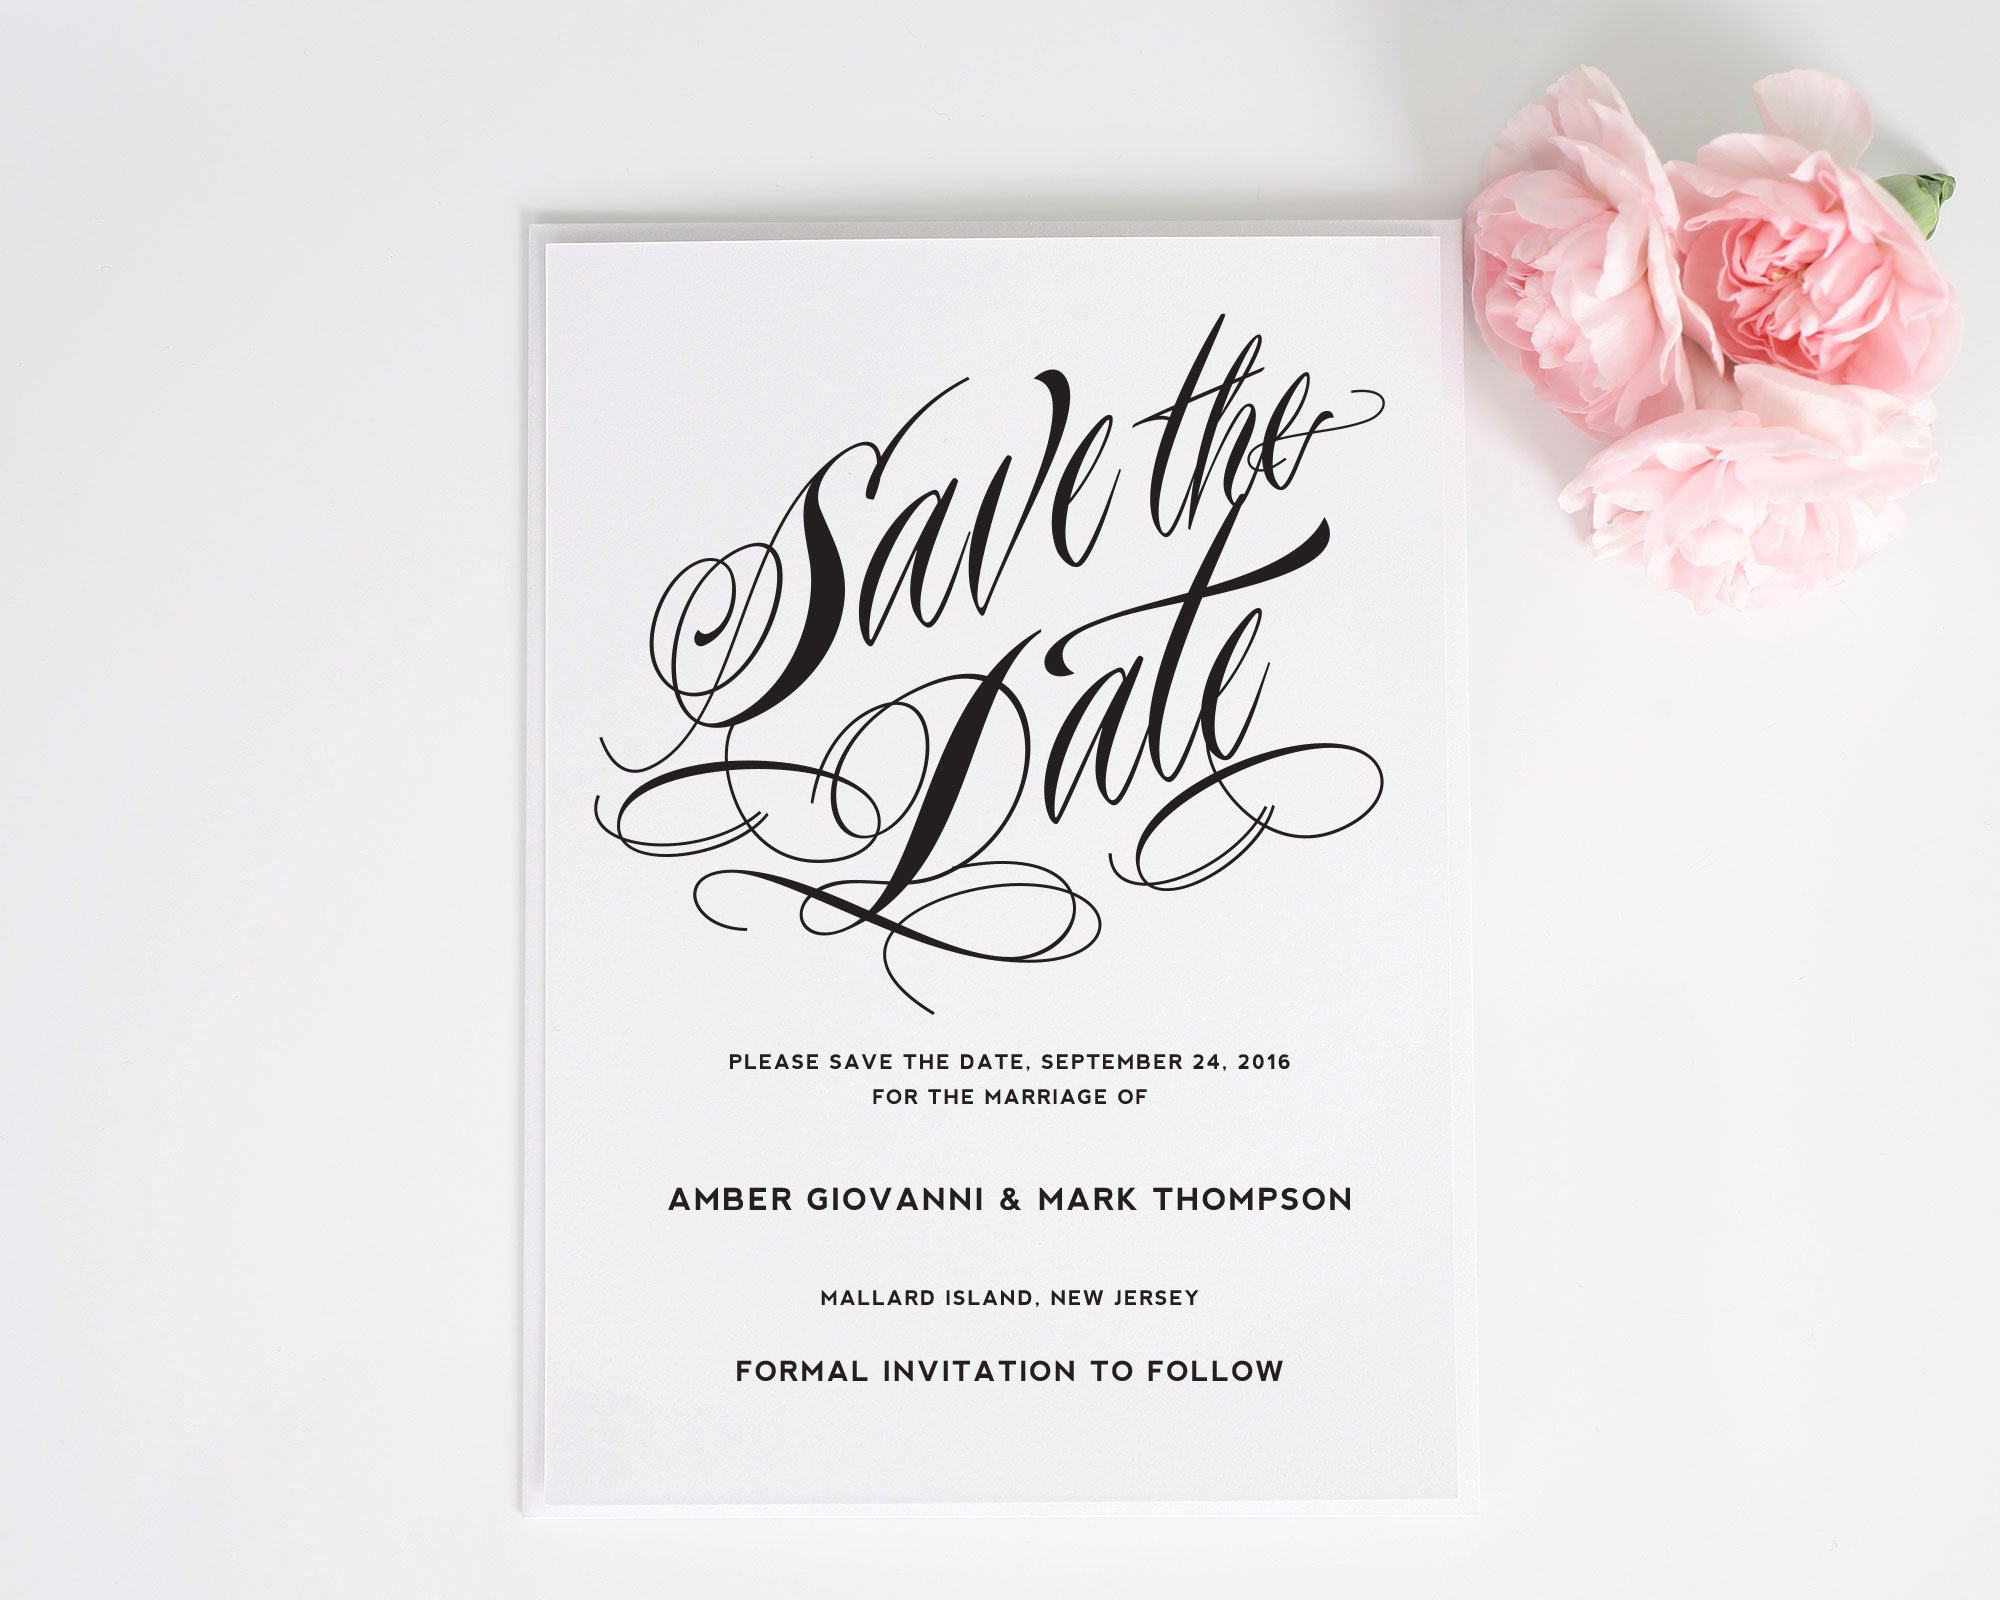 Ravishing Script Save the Date Cards - Save the Date Cards ...